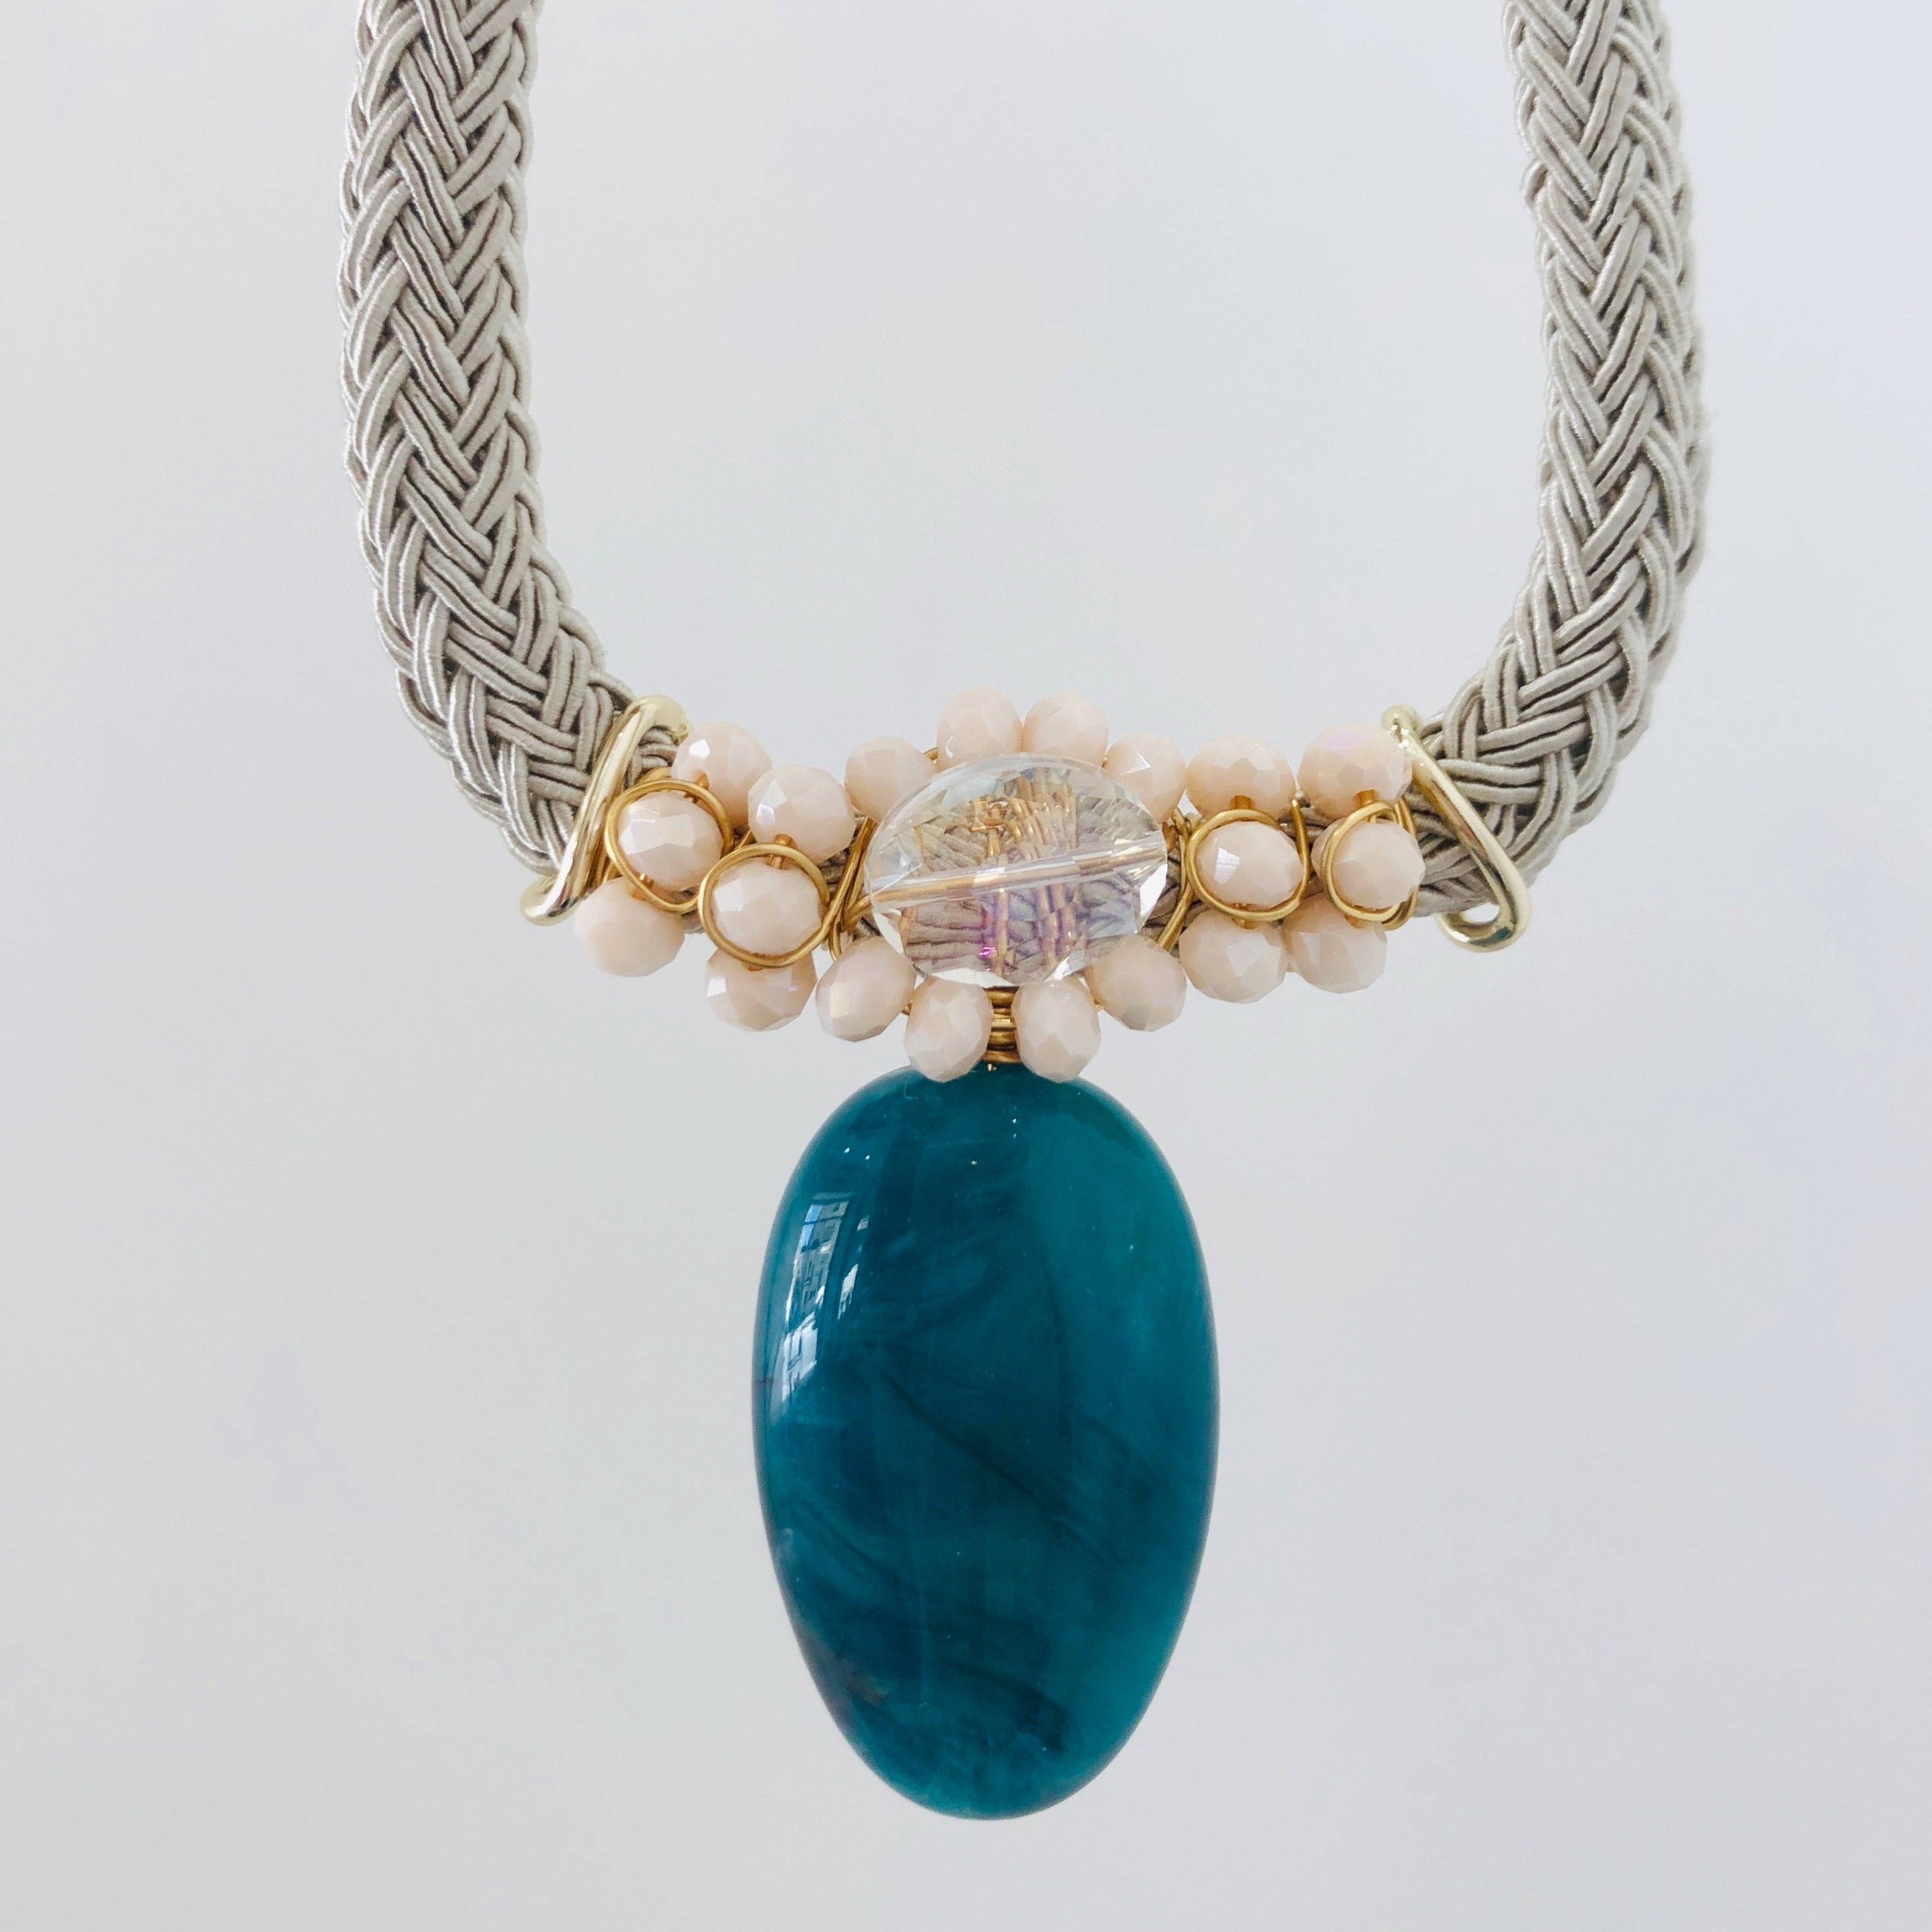 Teal & champagne short necklace